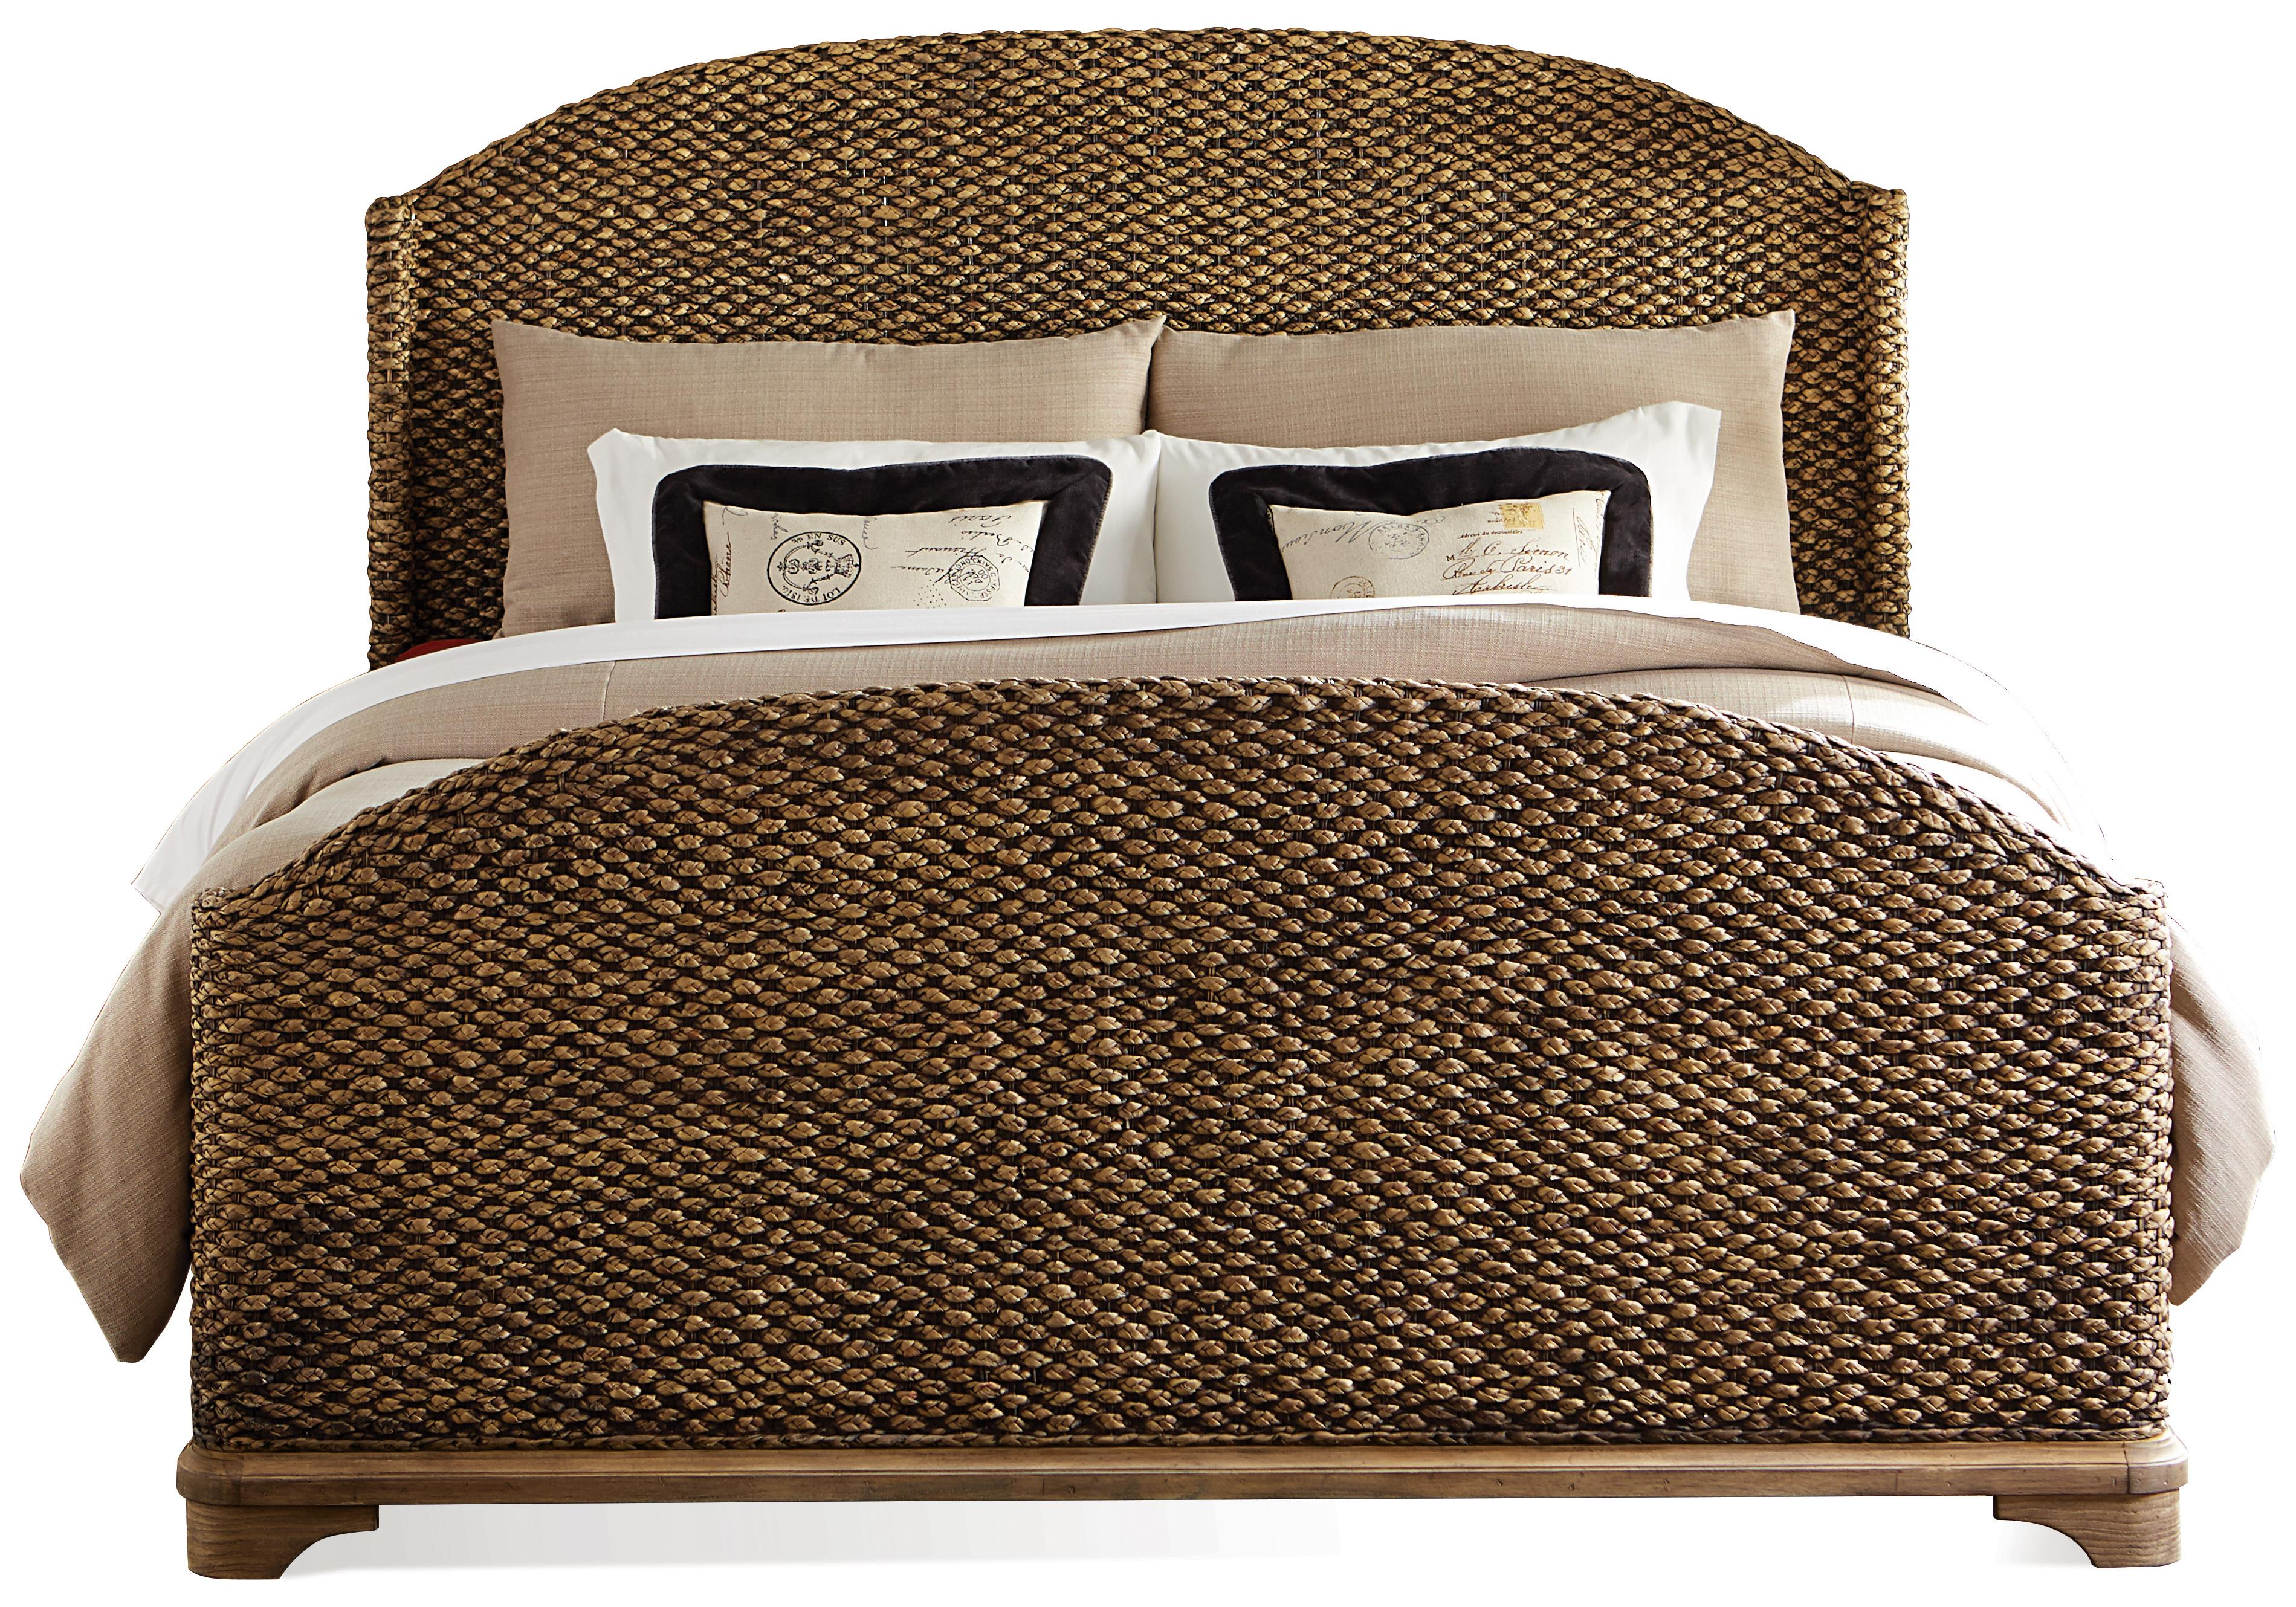 Riverside Furniture Sherborne King Woven Seagrass Bed | Johnny ...